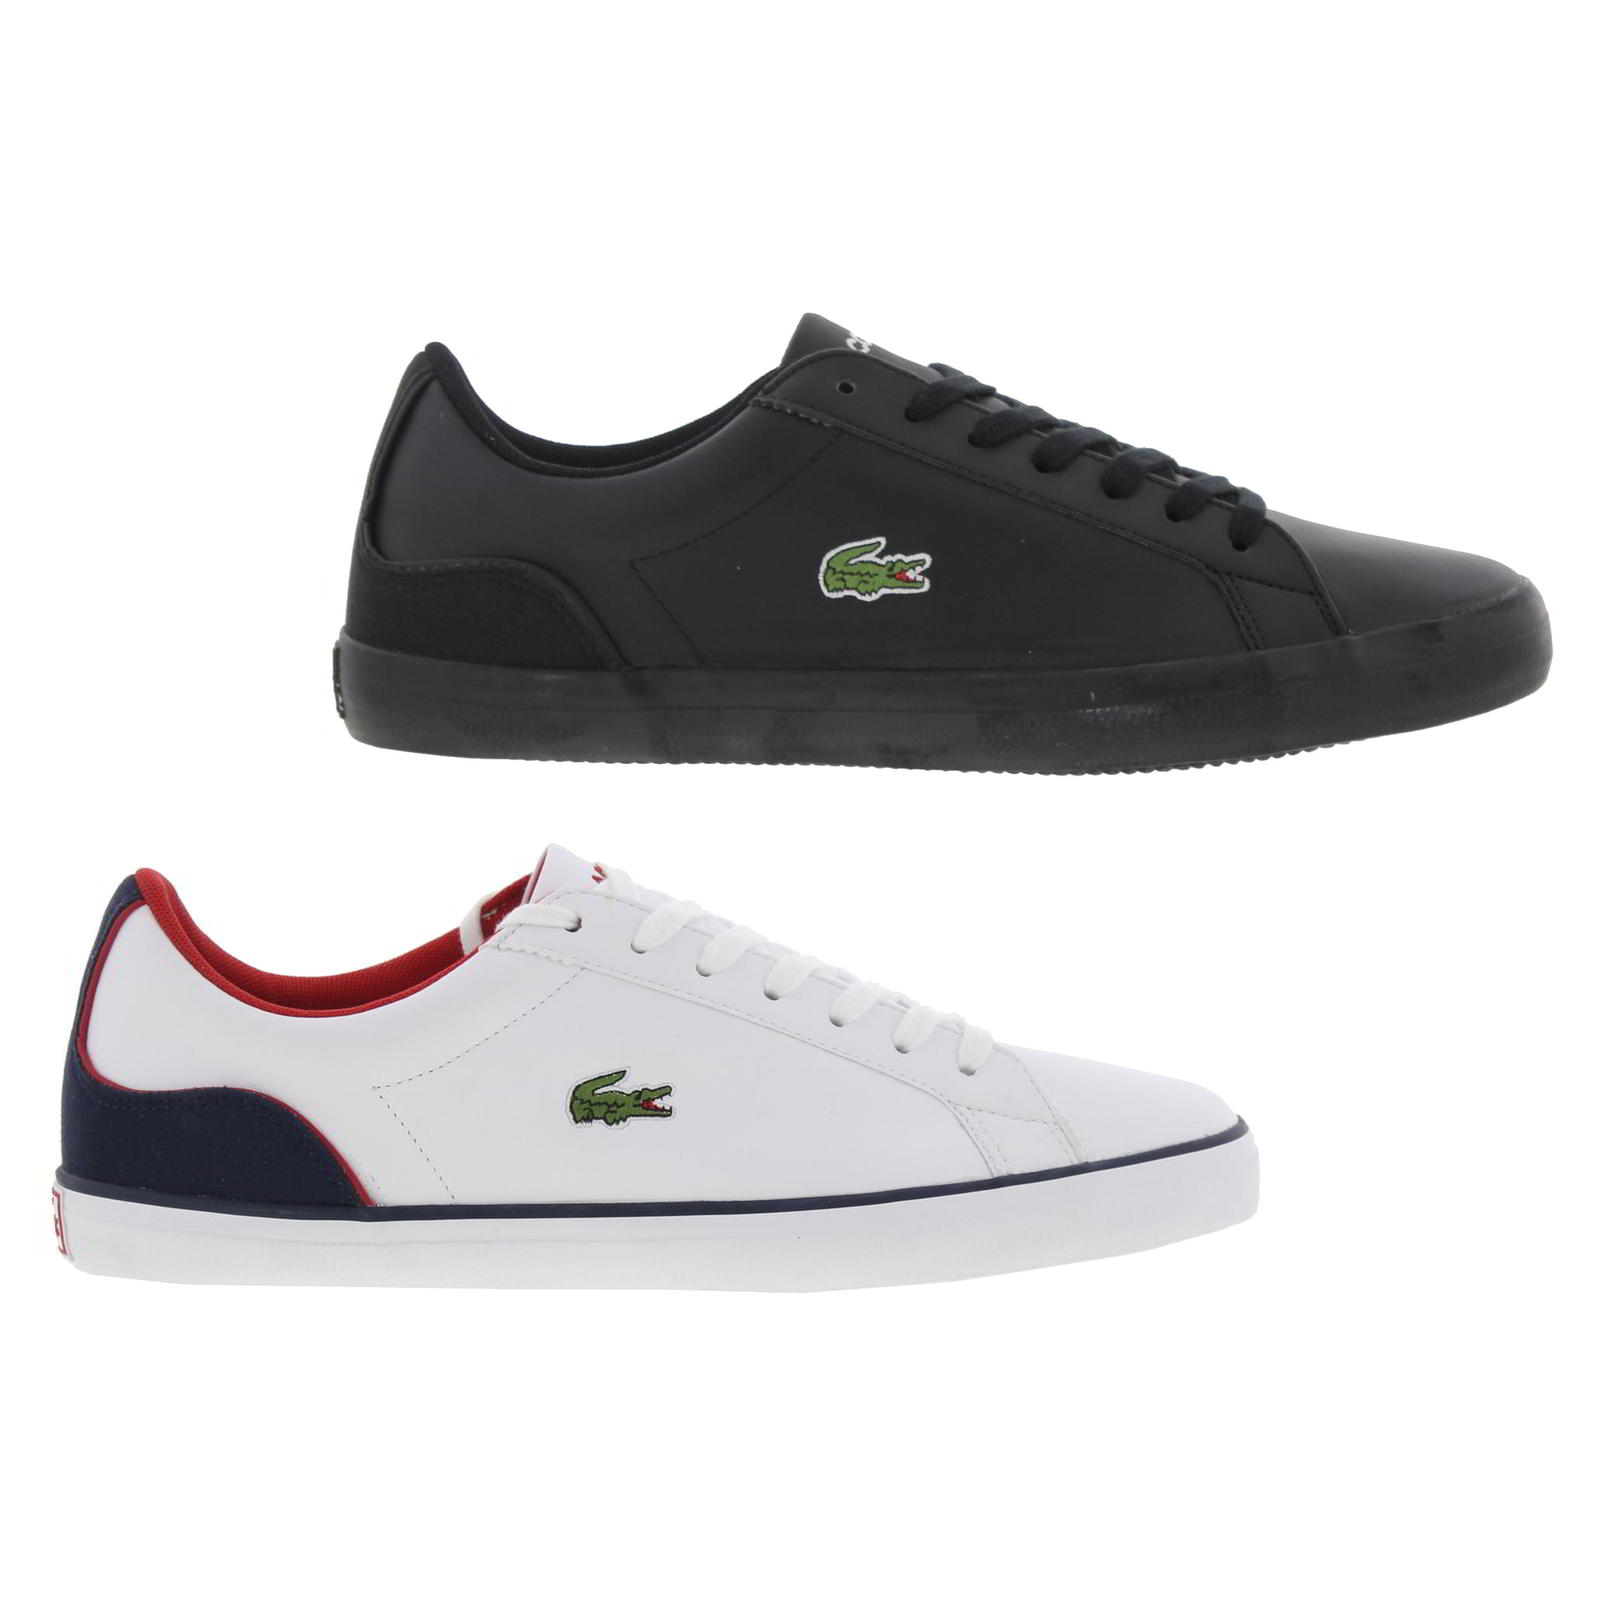 lacoste shoes first copyright issued meaning in spanish